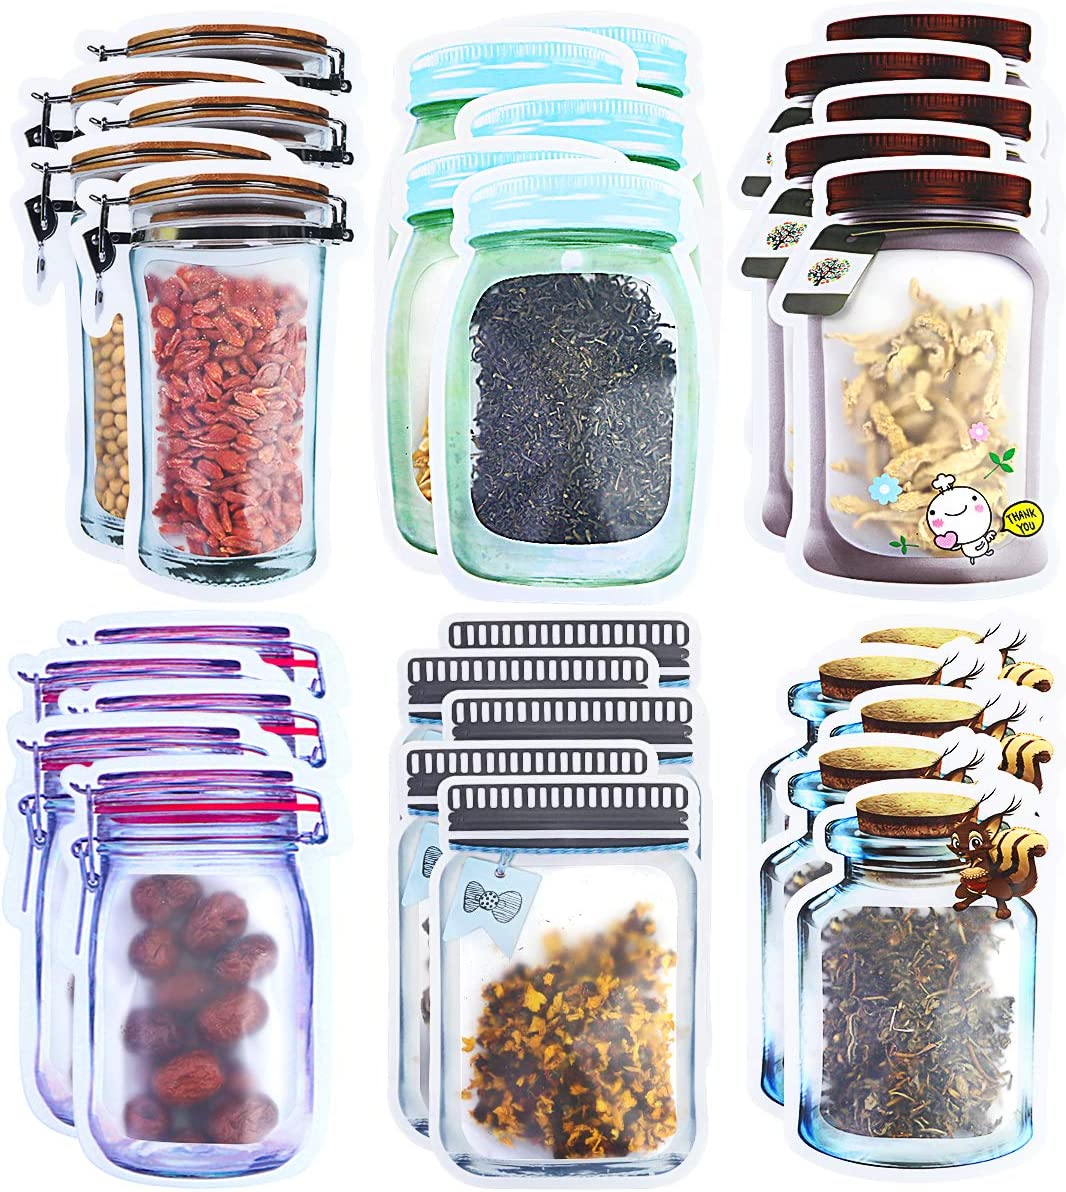 Nexxxi 30 Pack Mason Jar Zipper Bags Storage, Reusable Airtight Seal Food Bag Leak-Proof for Nuts Cookies, Travel Camping, 6 Shapes